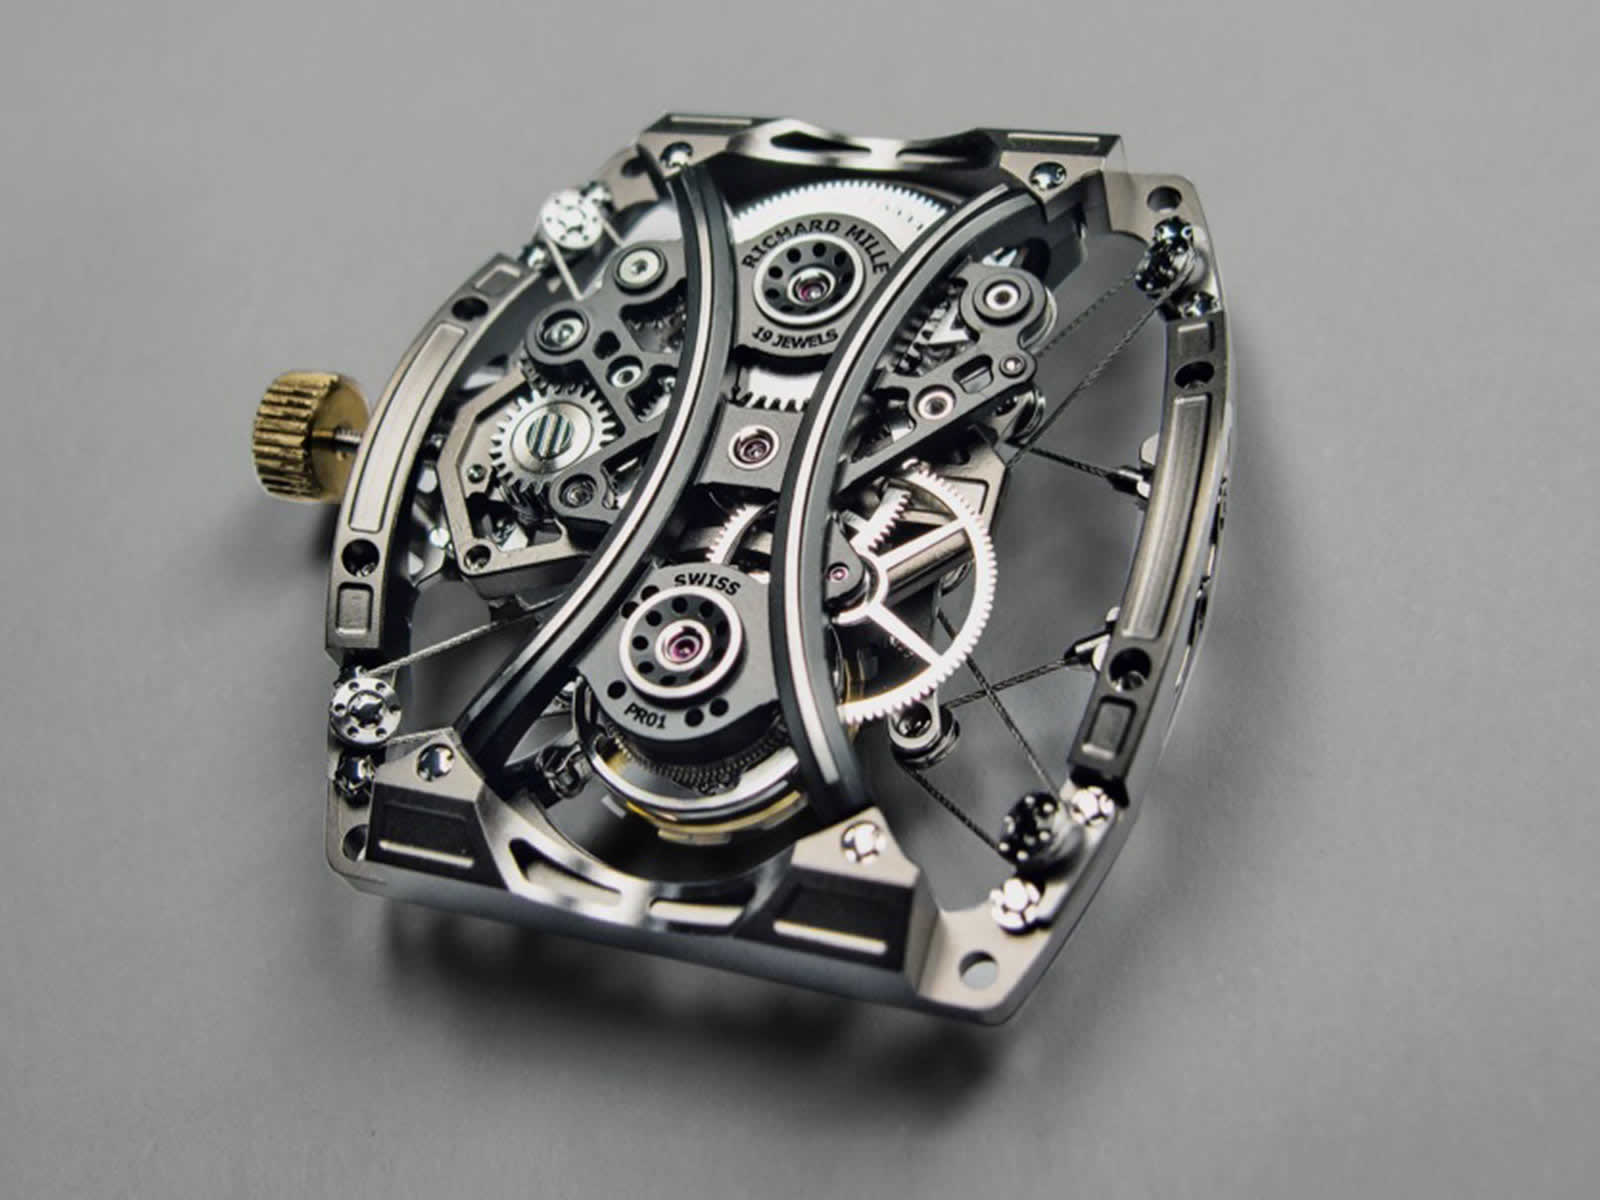 Richard-Mille-53-01-Calibre.jpg